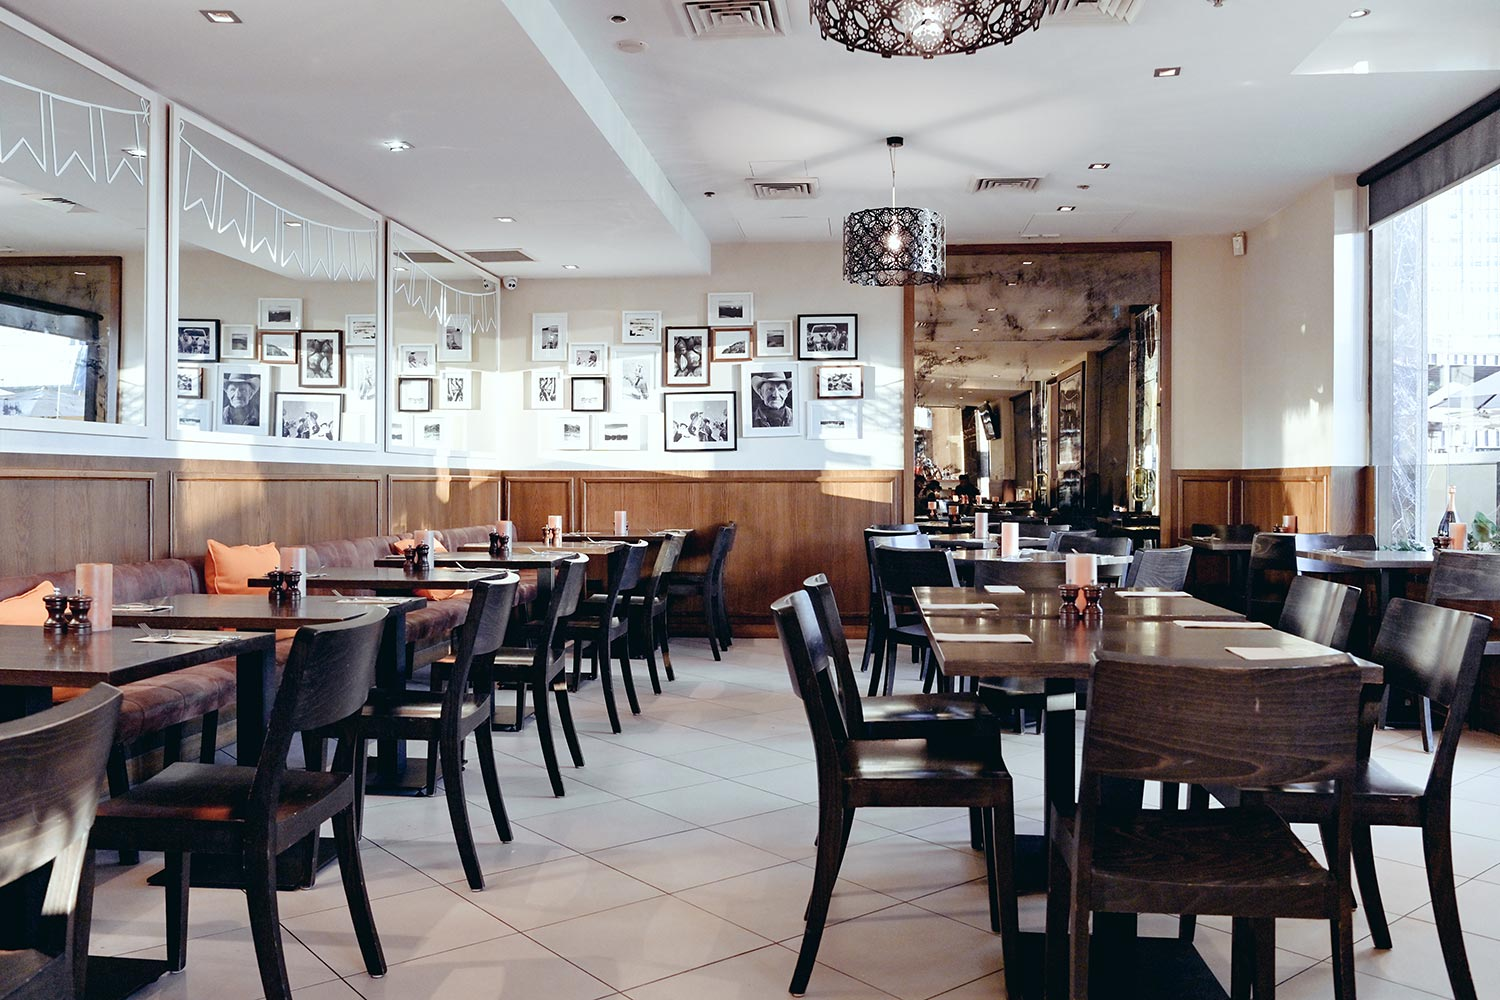 Searock Grill interior –tables and chairs